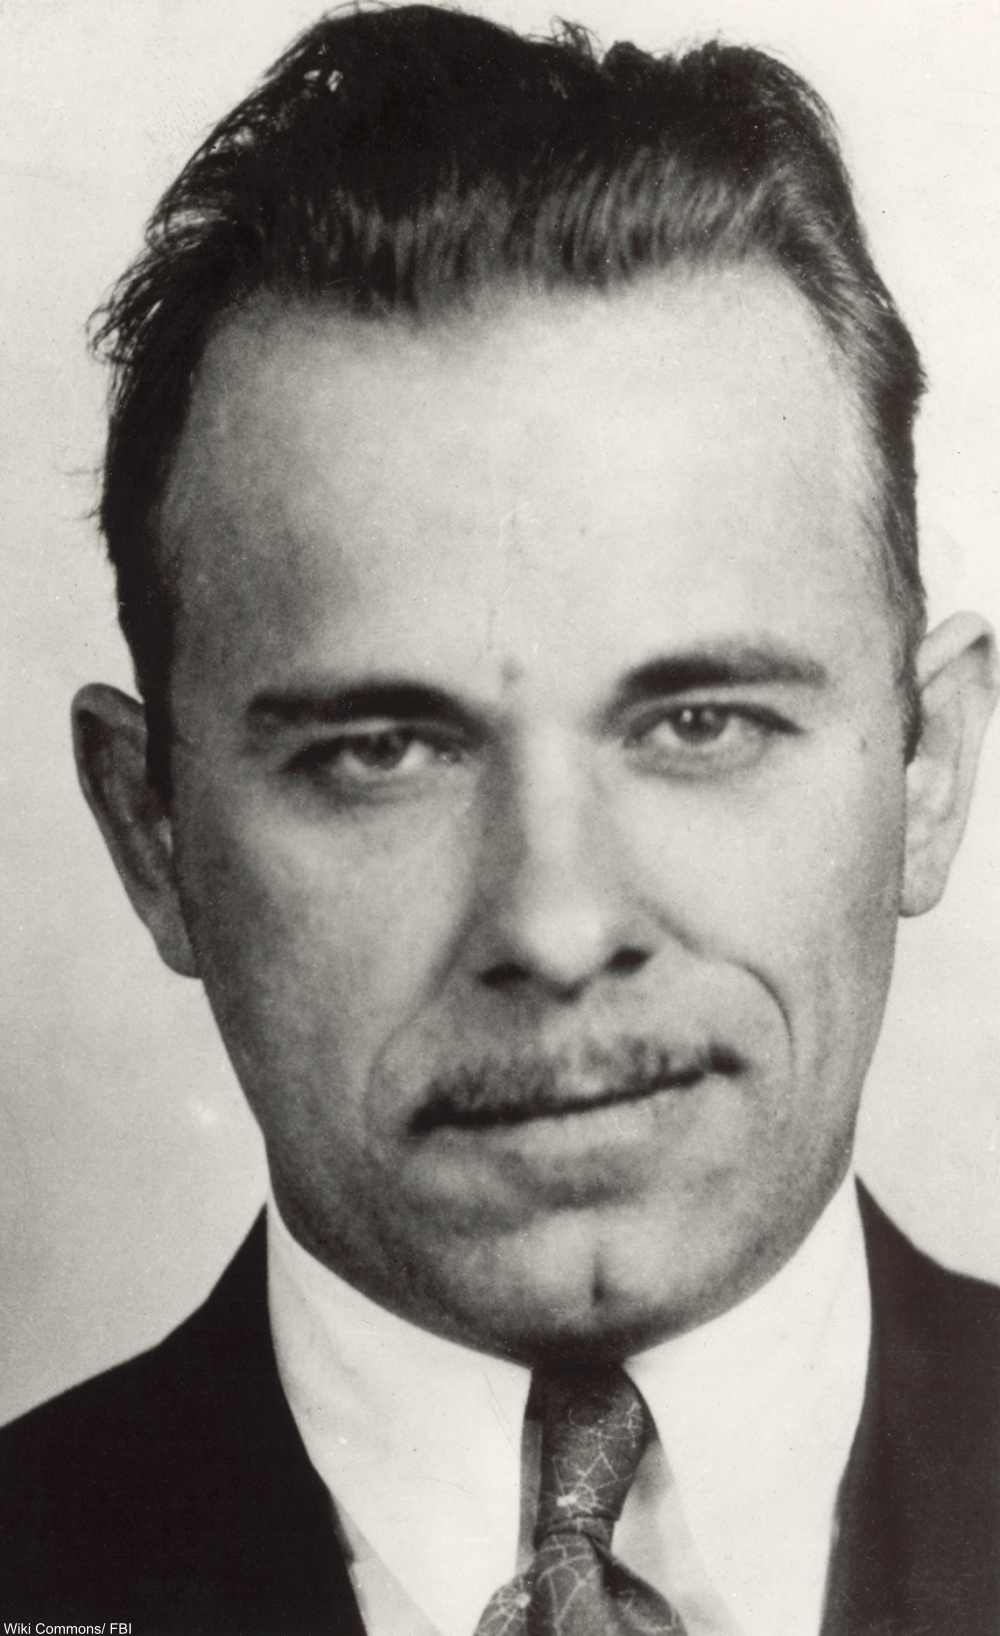 John Dillinger's Dirty Dozen Was Only the Beginning